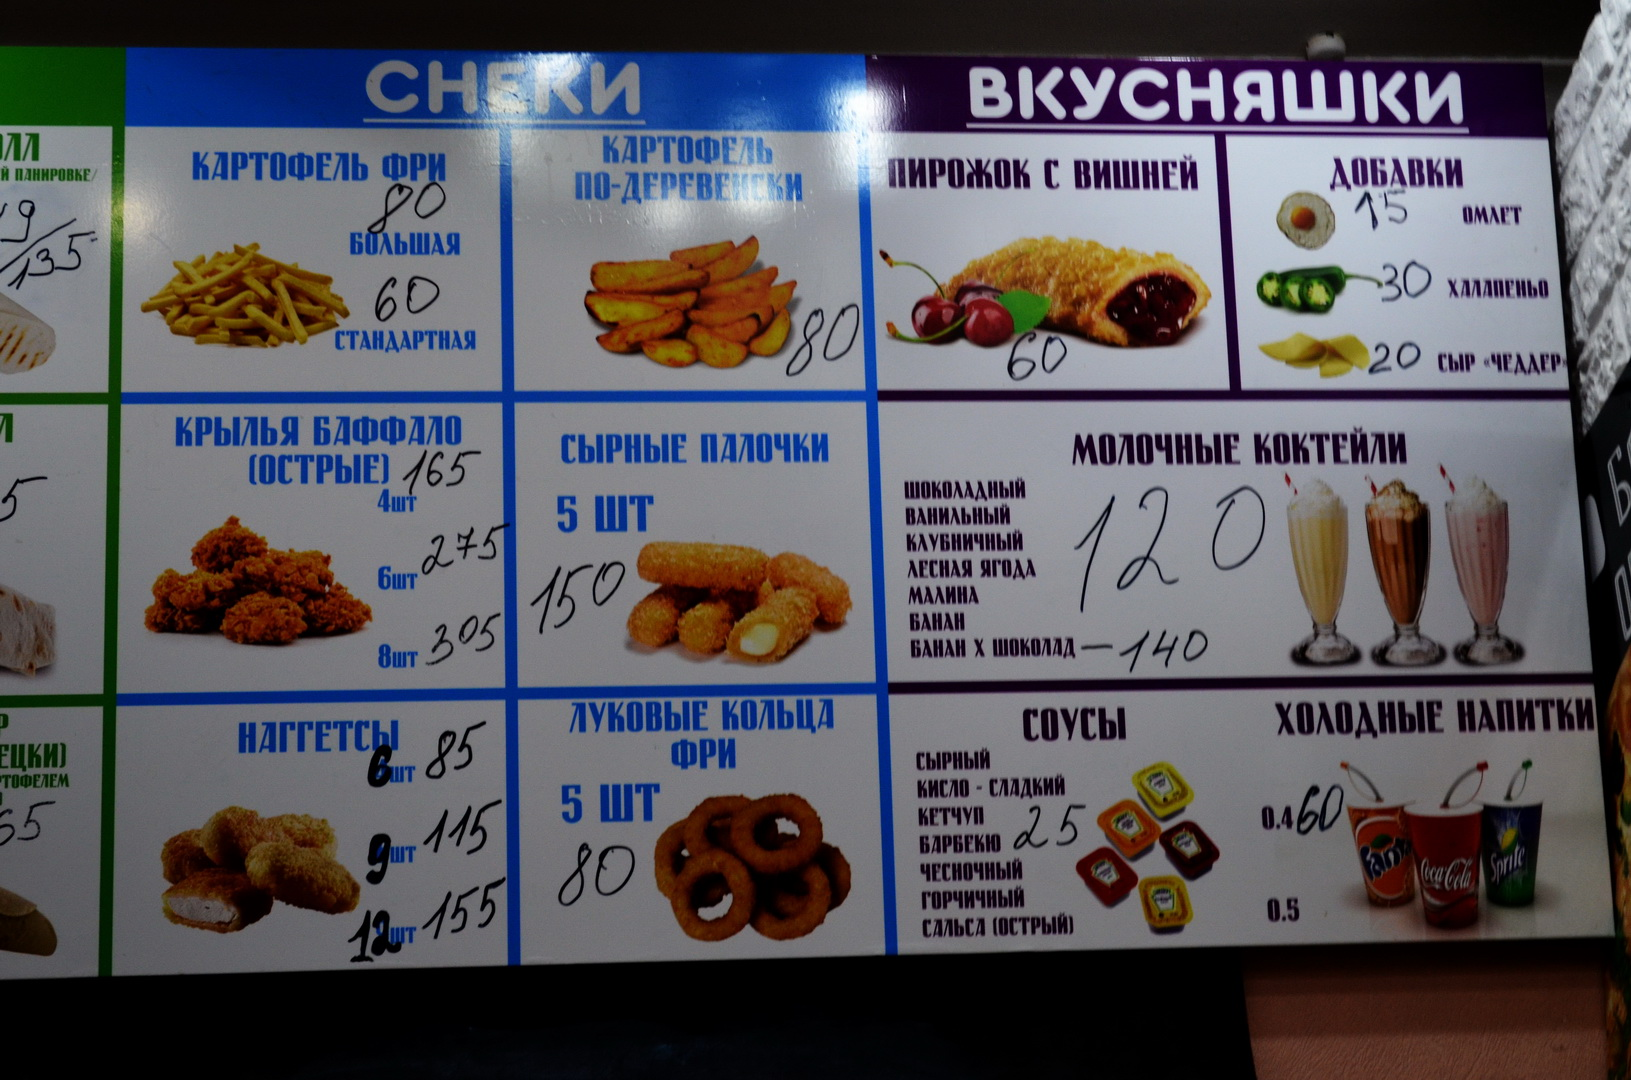 kerch website cafe bacon5